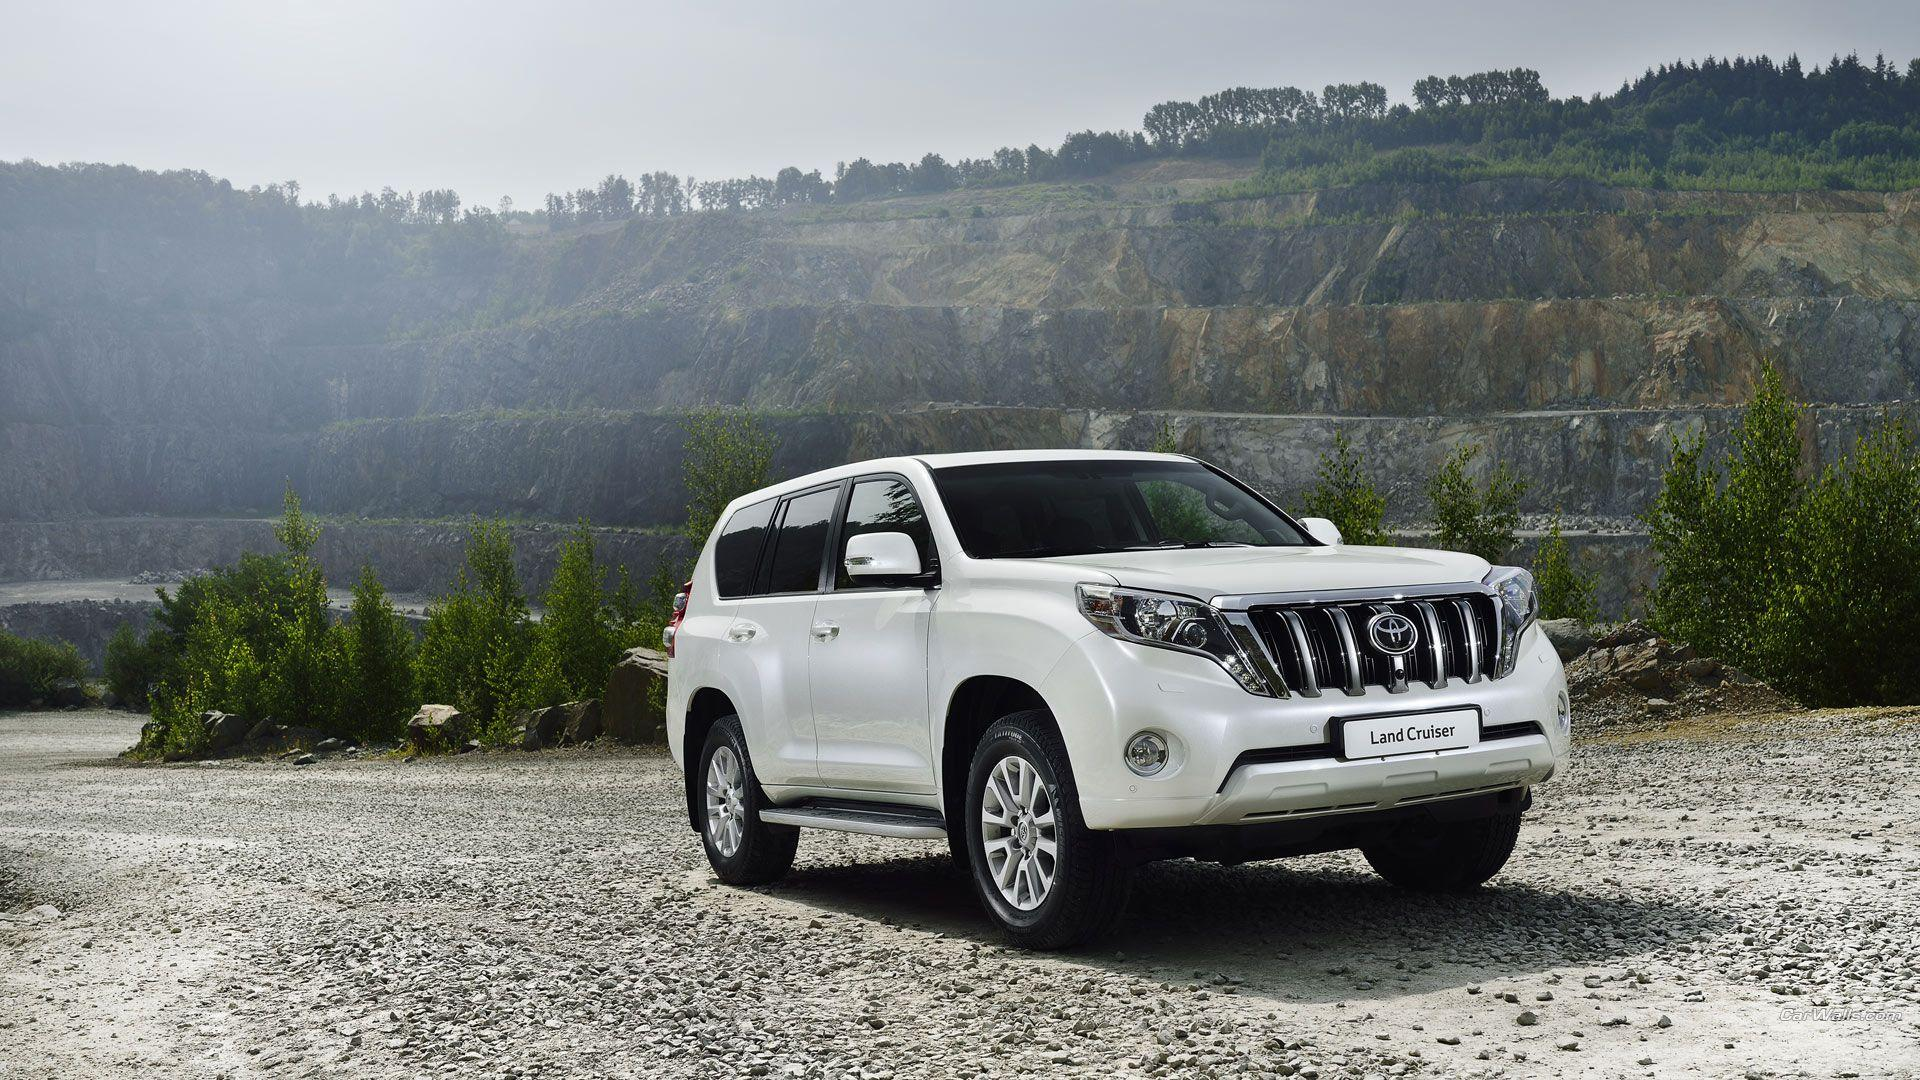 2014 Toyota Land Cruiser Full HD Wallpapers and Backgrounds Image